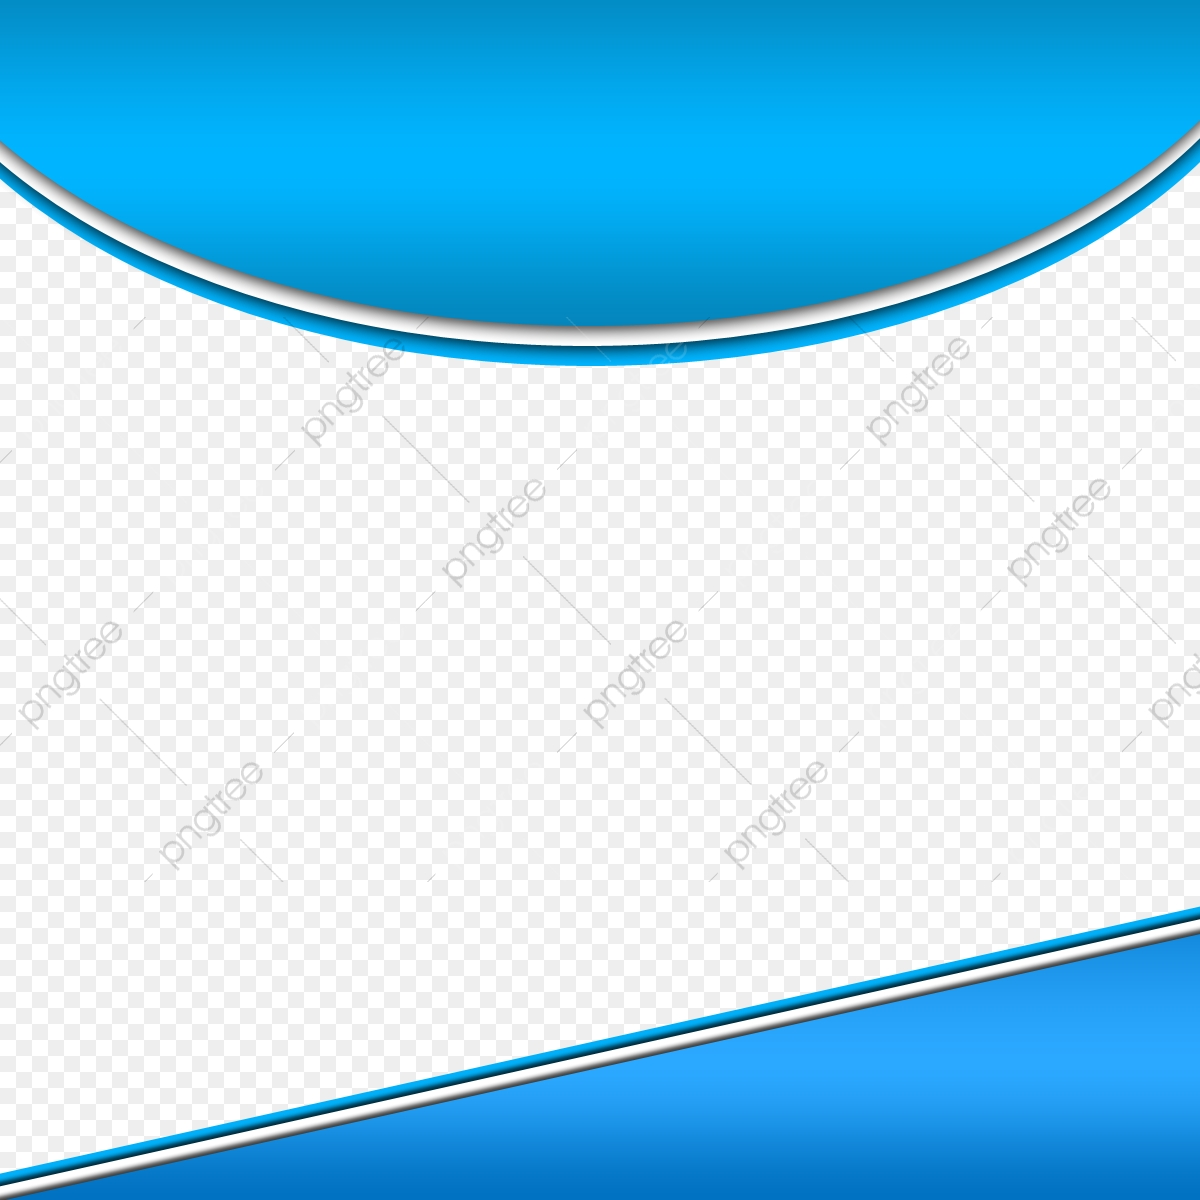 Unduh 65 Koleksi Background Banner Design Png Terbaik